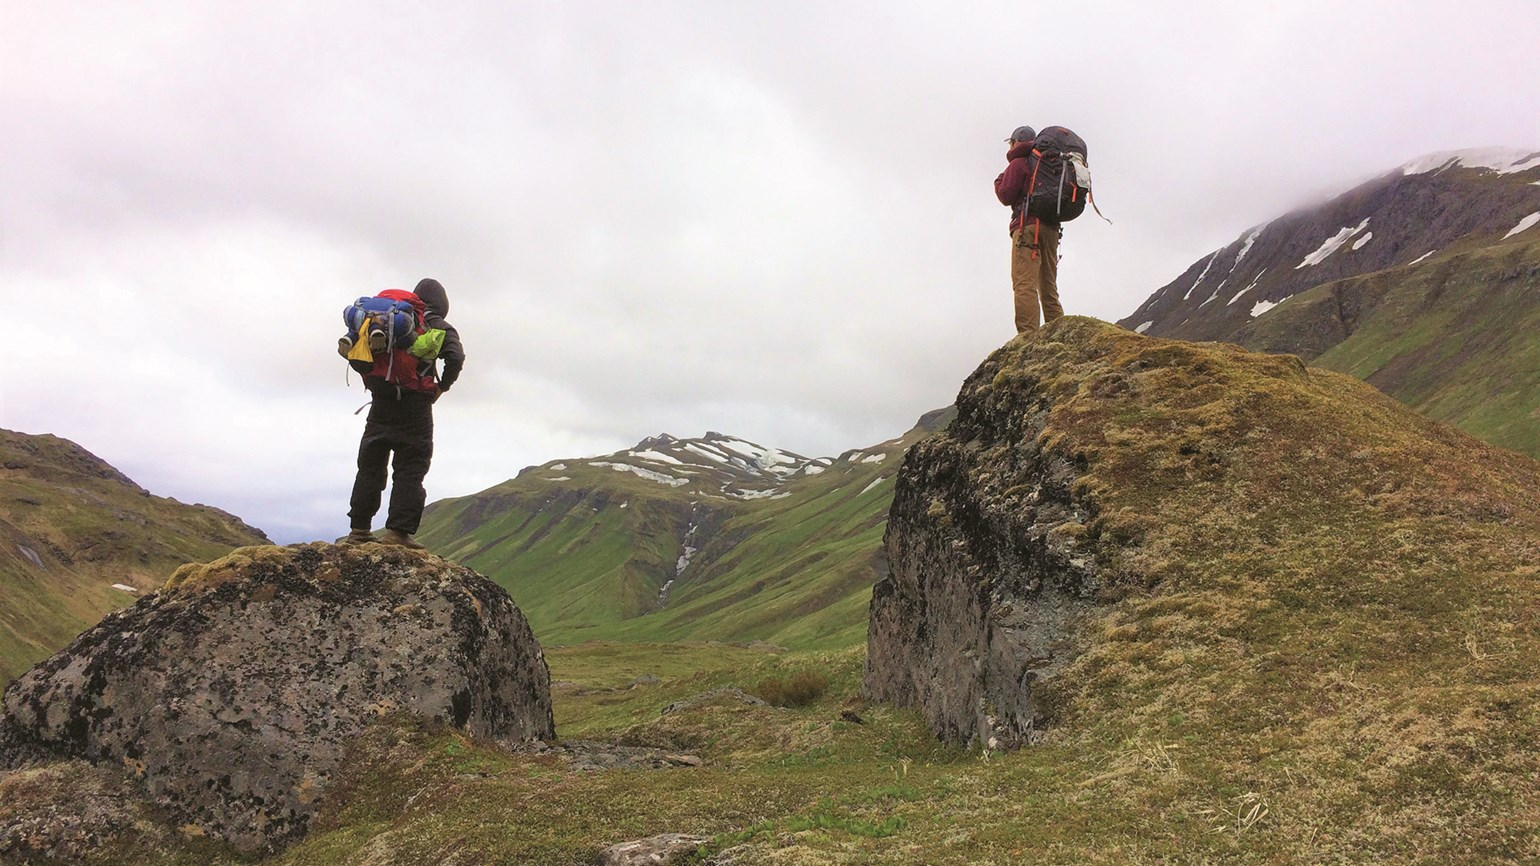 Alaska Adventure Travel introduces Aleutian Islands excursions